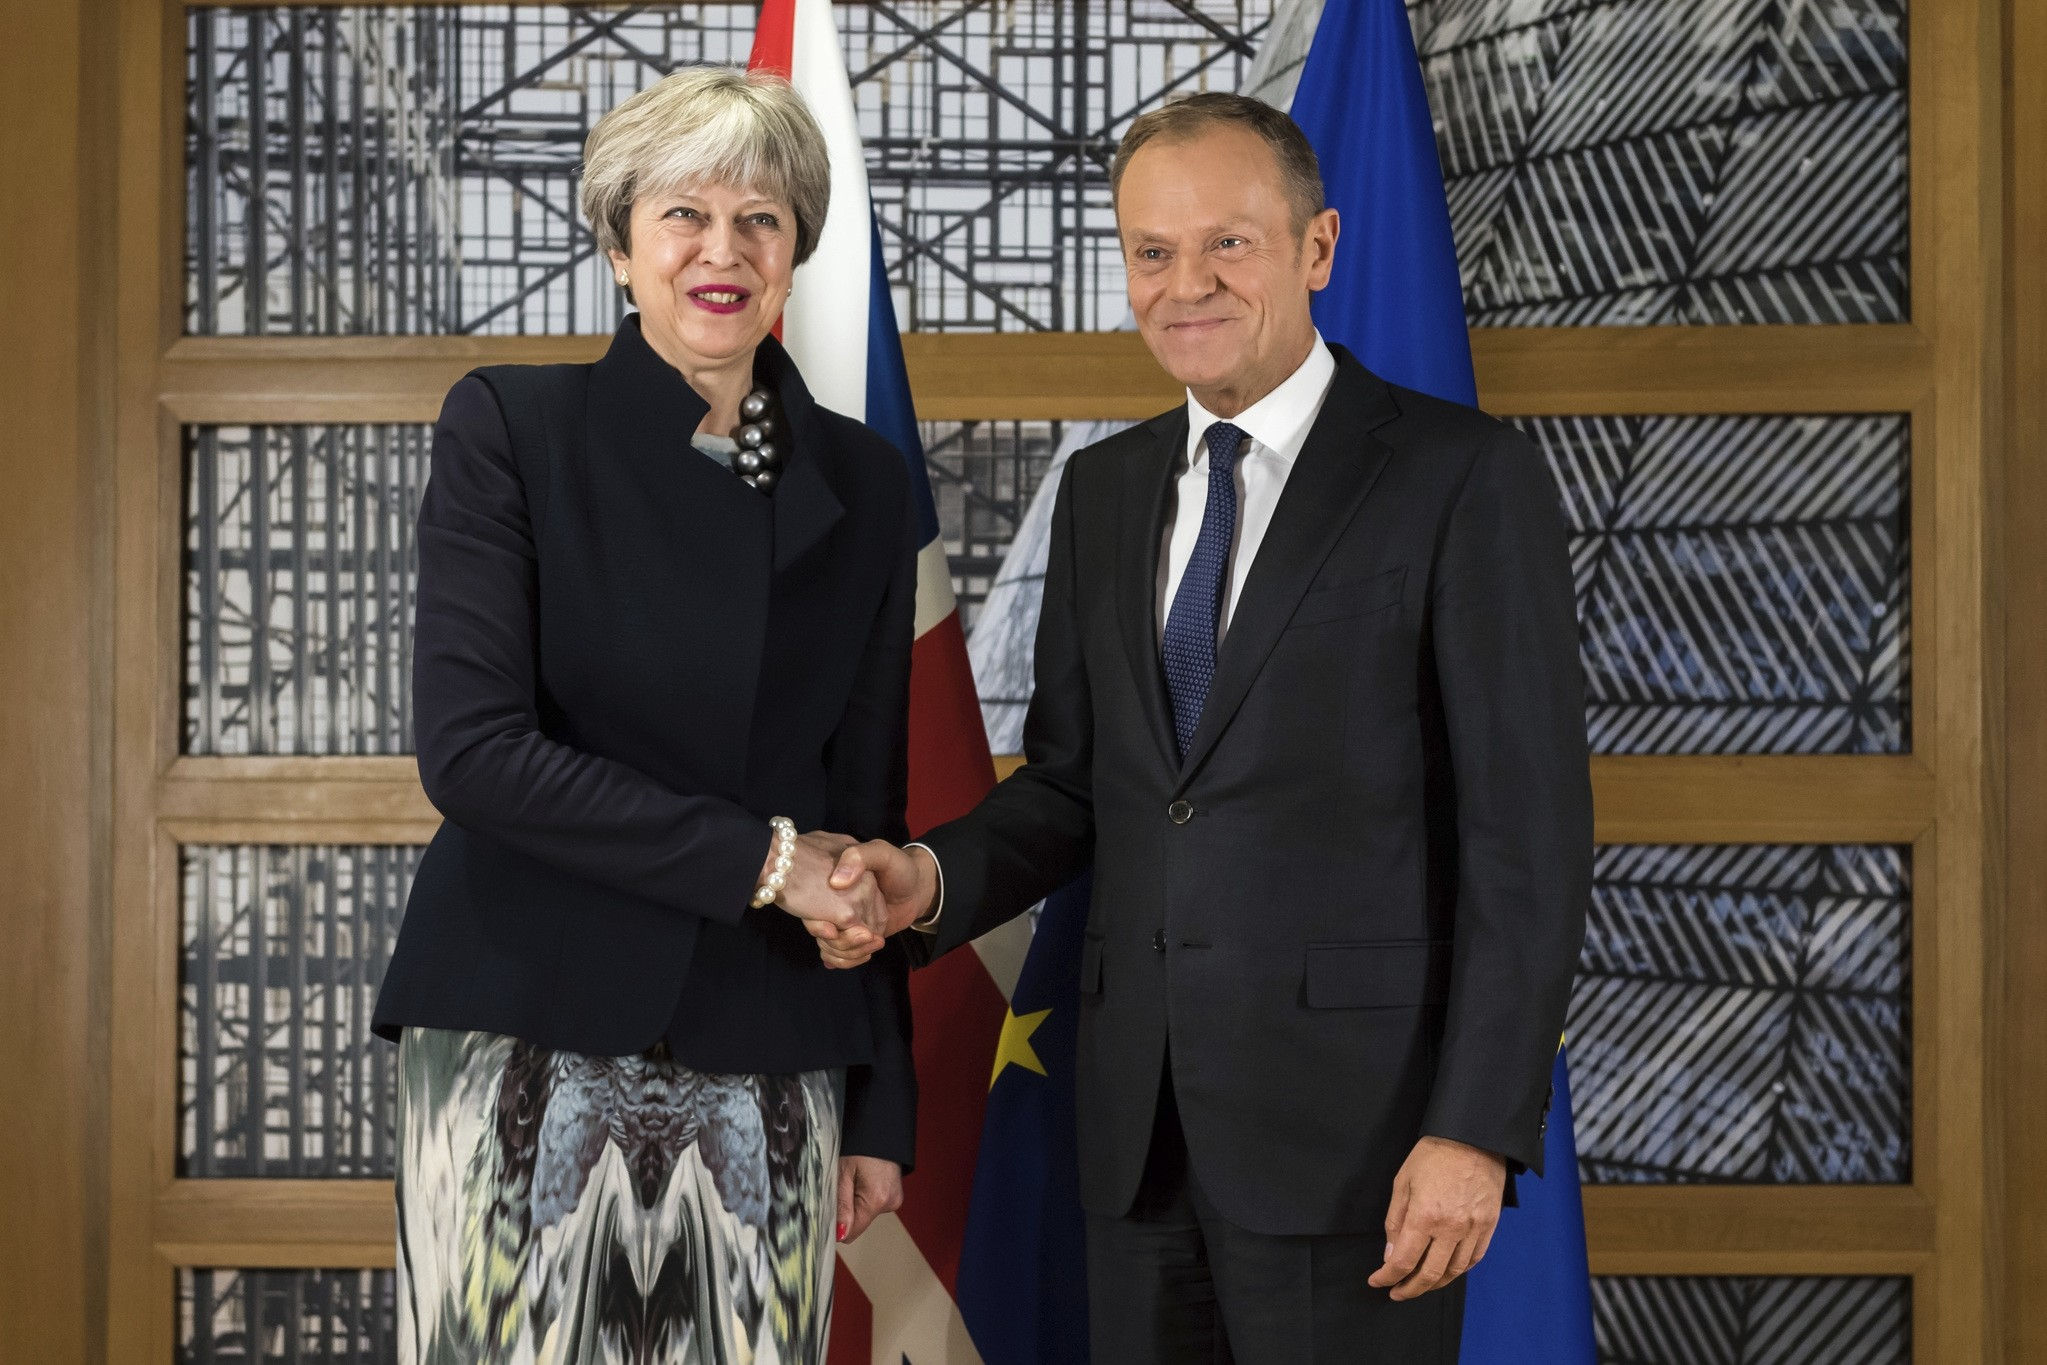 British Prime Minister Theresa May, left, shakes hands with European Council President Donald Tusk at the Europa building in Brussels on Monday, Dec. 4, 2017. (AP Photo)